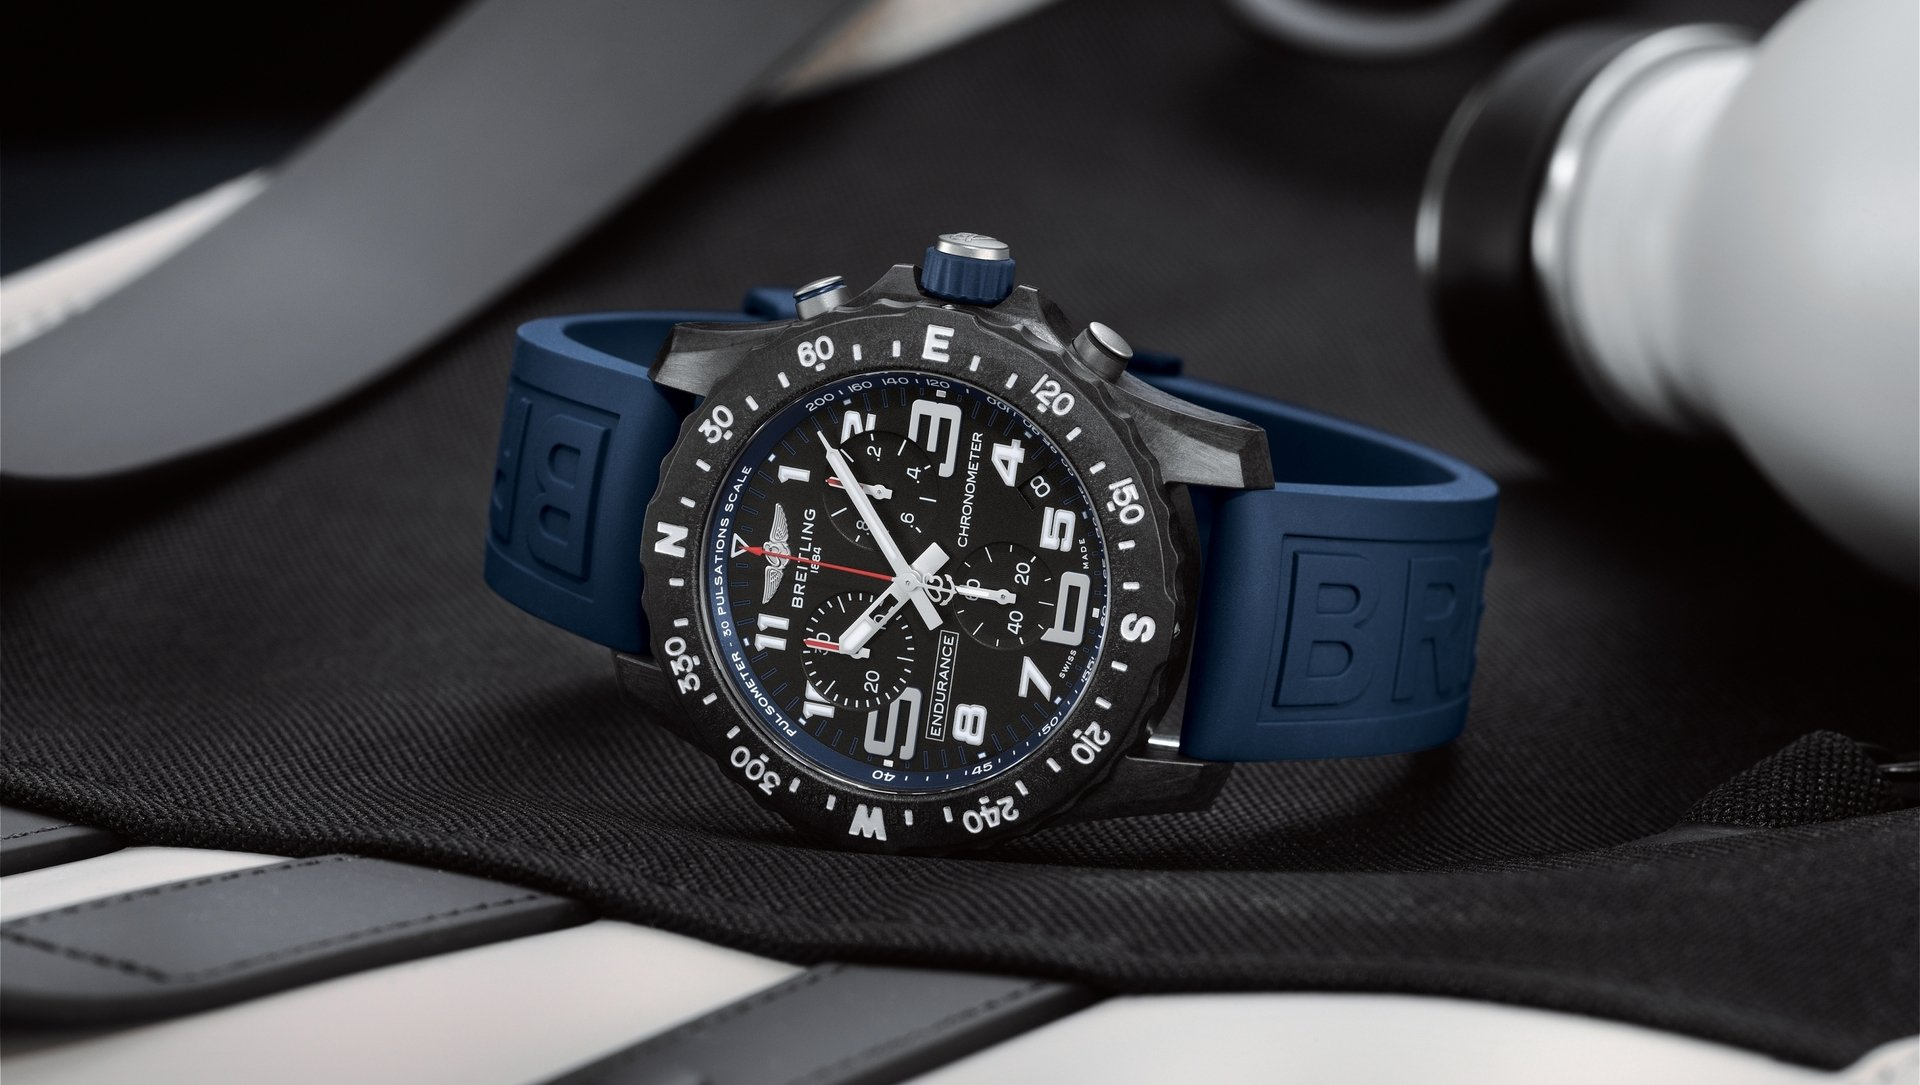 09_endurance-pro-with-a-blue-inner-bezel-and-rubber-strap.jpg